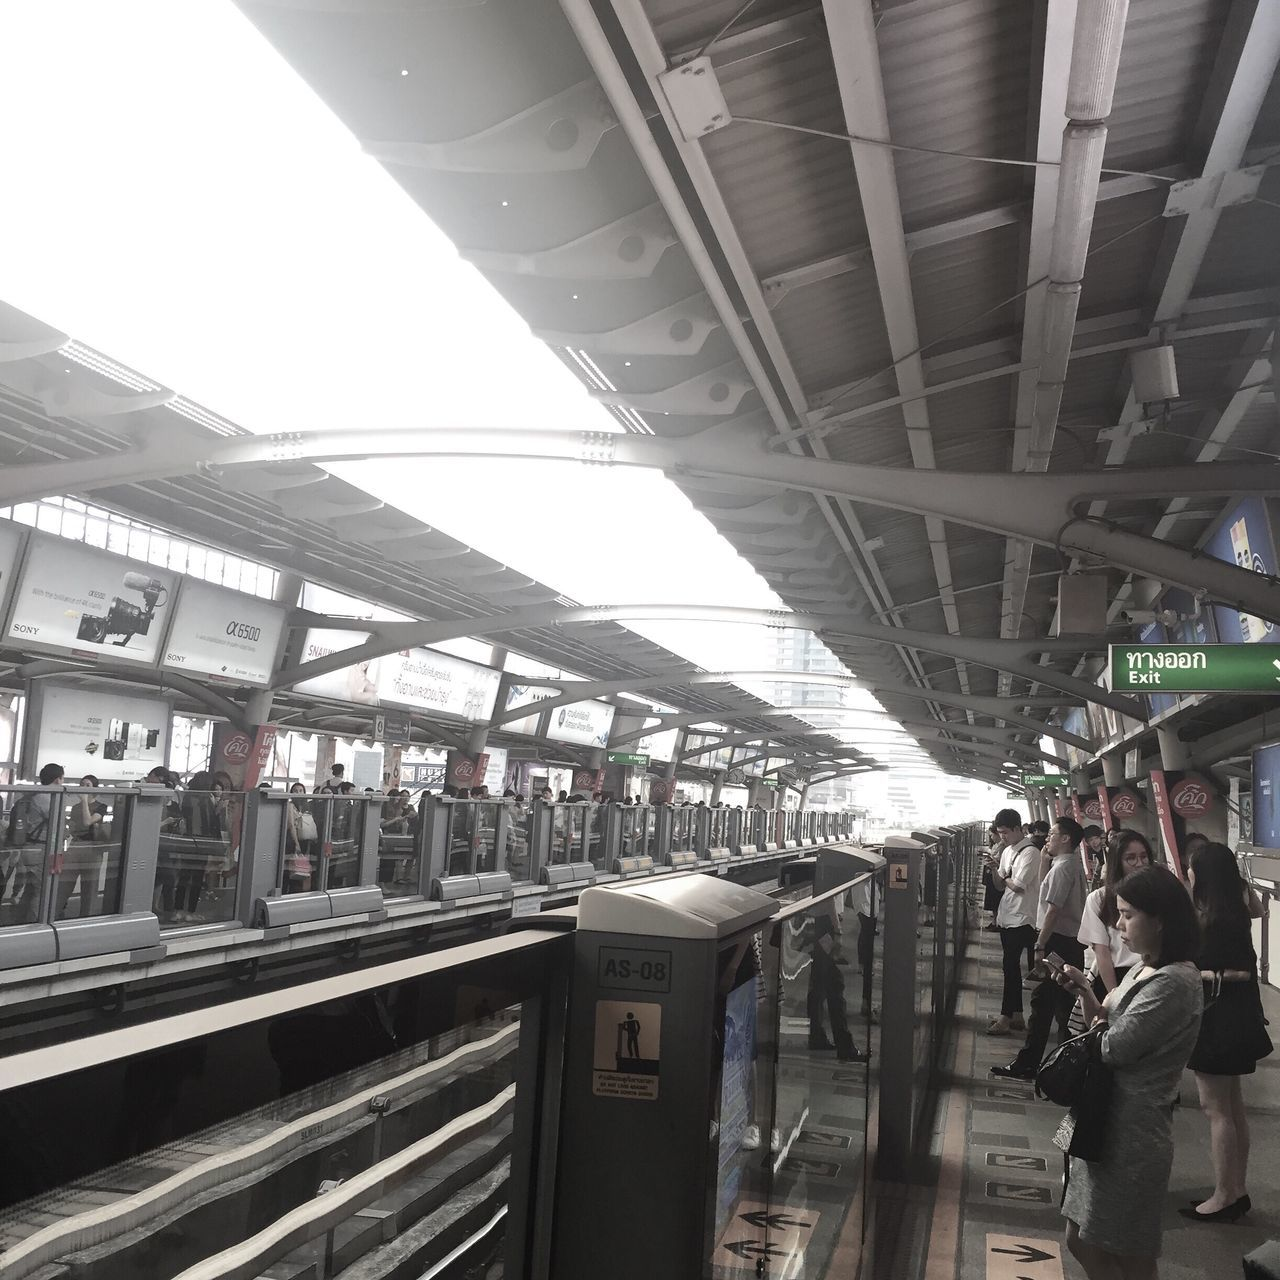 transportation, real people, public transportation, connection, architecture, built structure, men, lifestyles, mode of transport, railroad station platform, train - vehicle, railroad station, city life, bridge - man made structure, city, journey, large group of people, commuter, standing, women, day, indoors, people, adult